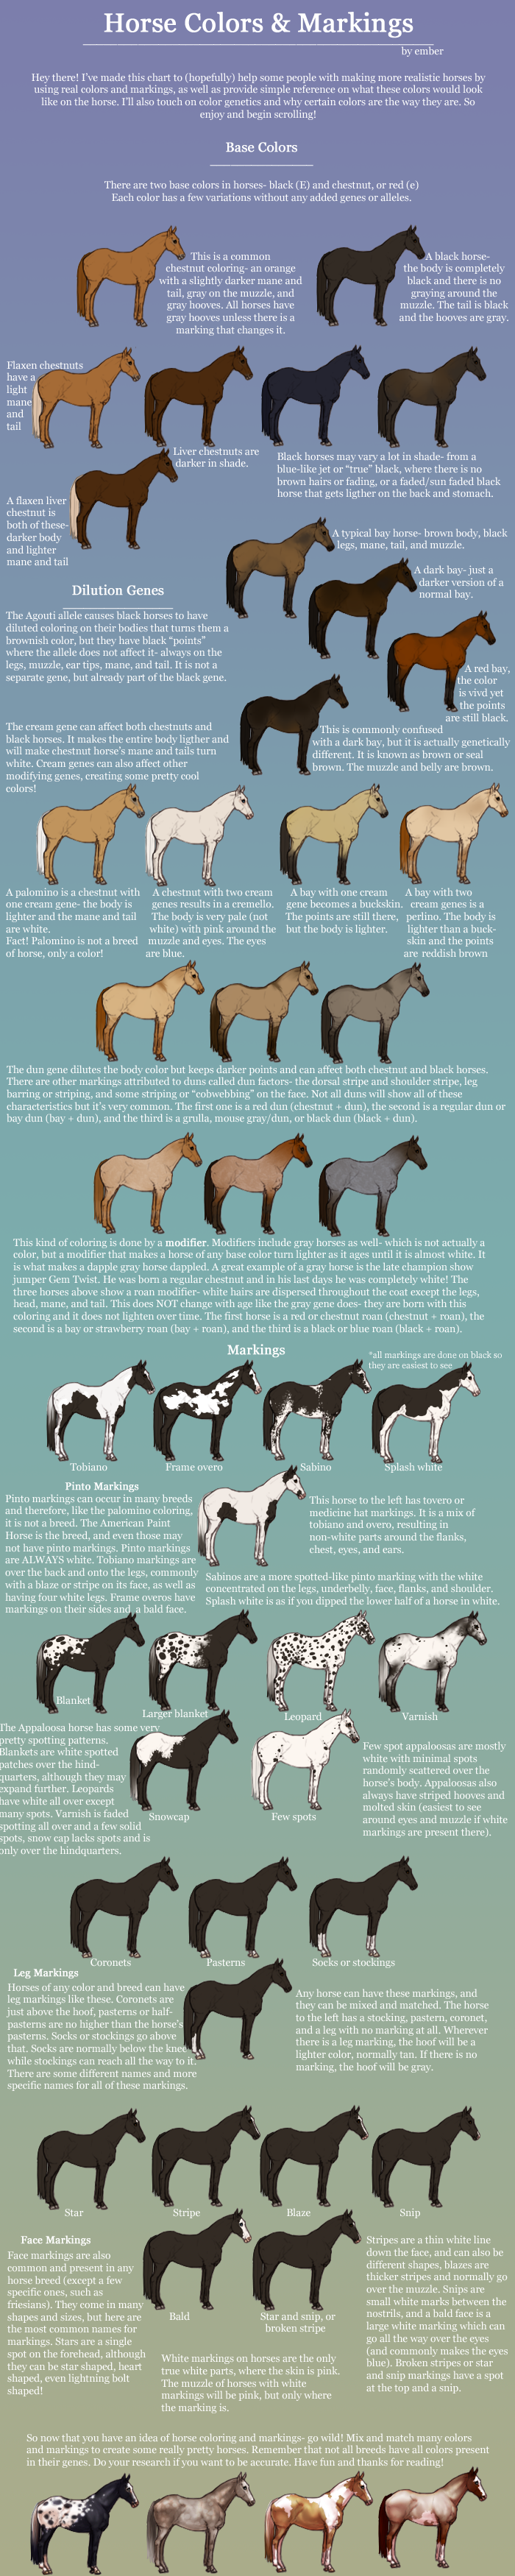 Equine color and markings chart by pipamir on deviantart equine color and markings chart by pipamir nvjuhfo Choice Image